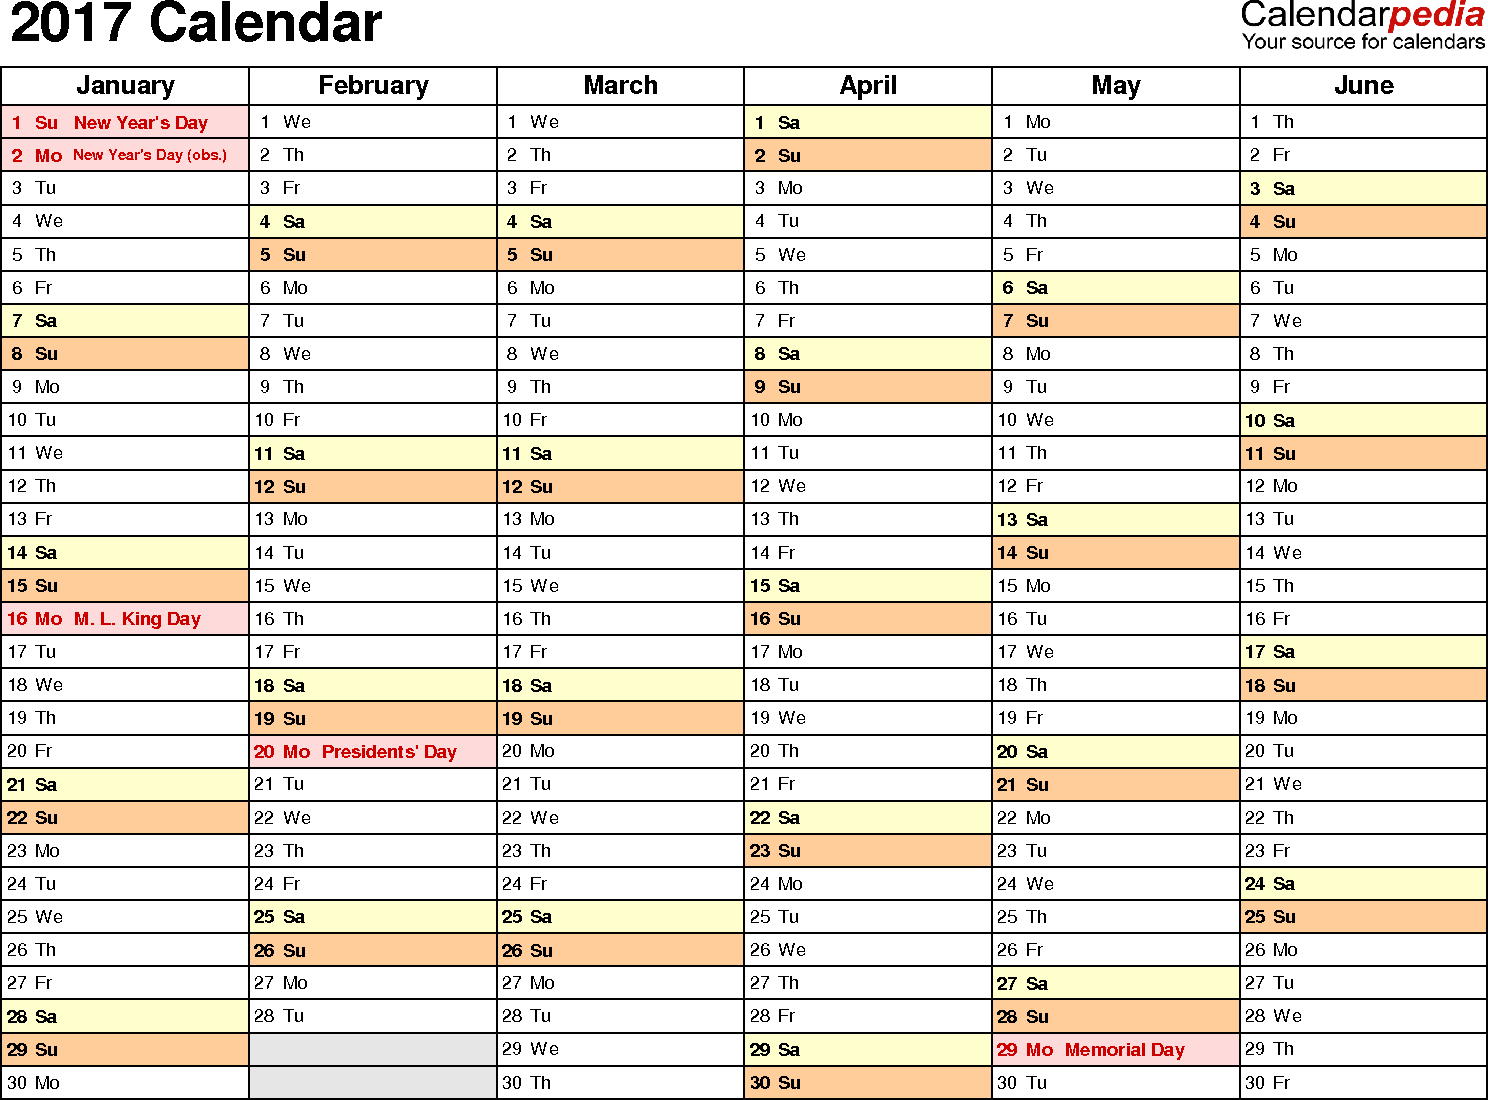 Ediblewildsus  Outstanding  Calendar  Download  Free Printable Excel Templates Xls With Inspiring Template   Calendar For Excel Months Horizontally  Pages Landscape Orientation With Delightful Predictive Analytics Excel Also Excel Vba Loop Through Columns In Addition Superscript On Excel And Attendance Template Excel As Well As Fourier Transform In Excel Additionally Excel  For Dummies Pdf From Calendarpediacom With Ediblewildsus  Inspiring  Calendar  Download  Free Printable Excel Templates Xls With Delightful Template   Calendar For Excel Months Horizontally  Pages Landscape Orientation And Outstanding Predictive Analytics Excel Also Excel Vba Loop Through Columns In Addition Superscript On Excel From Calendarpediacom